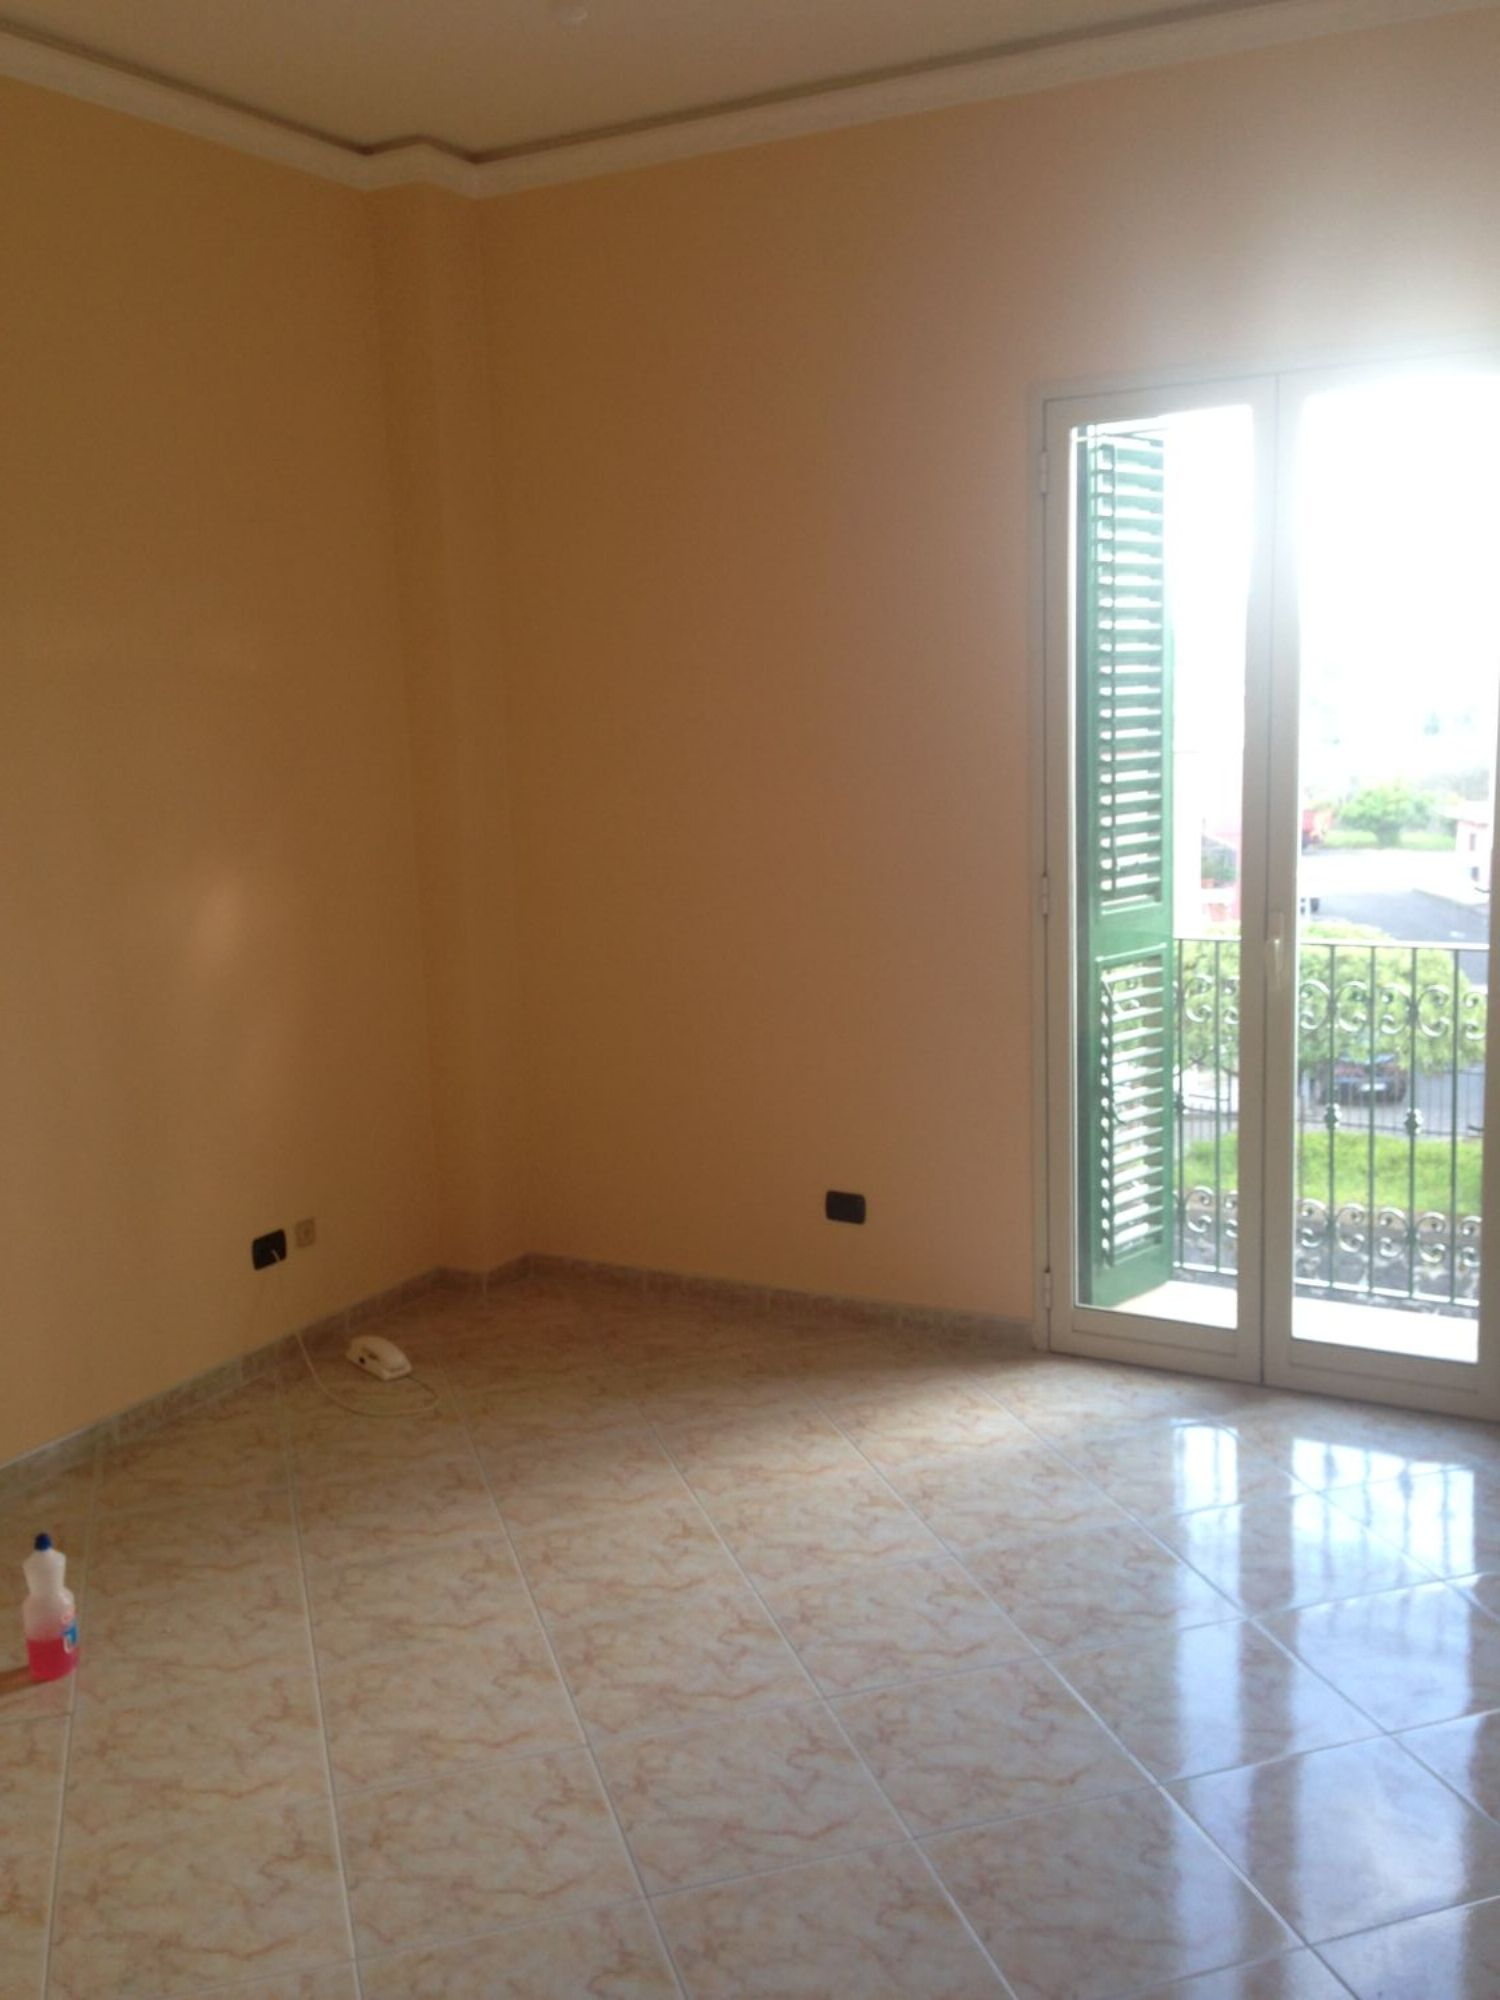 Duplex in Affitto a Acireale